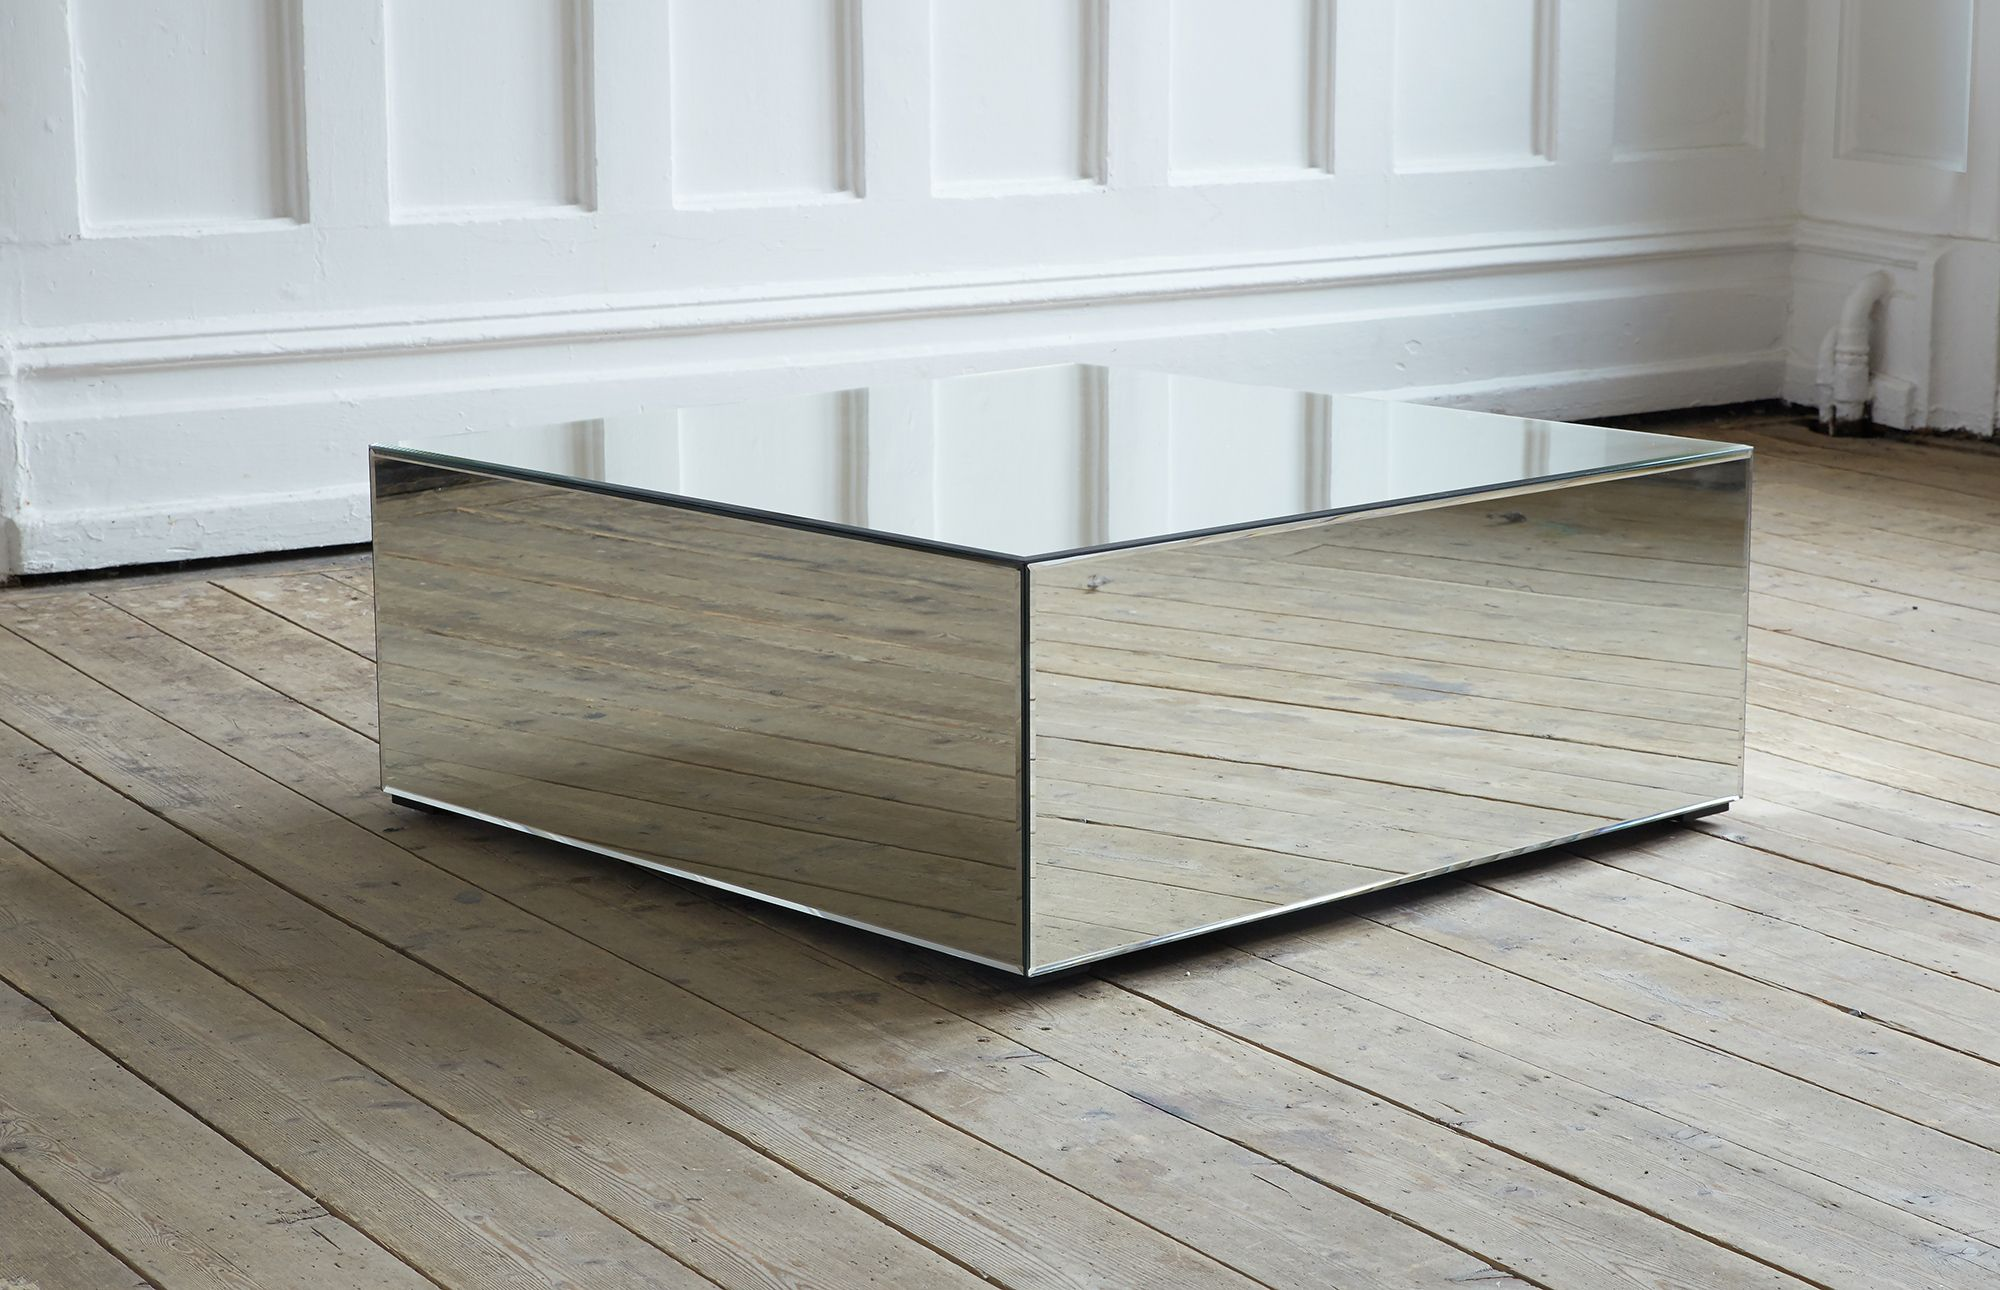 Square Coffee Table Made Entirely Of Mirrored Glass Mirrored